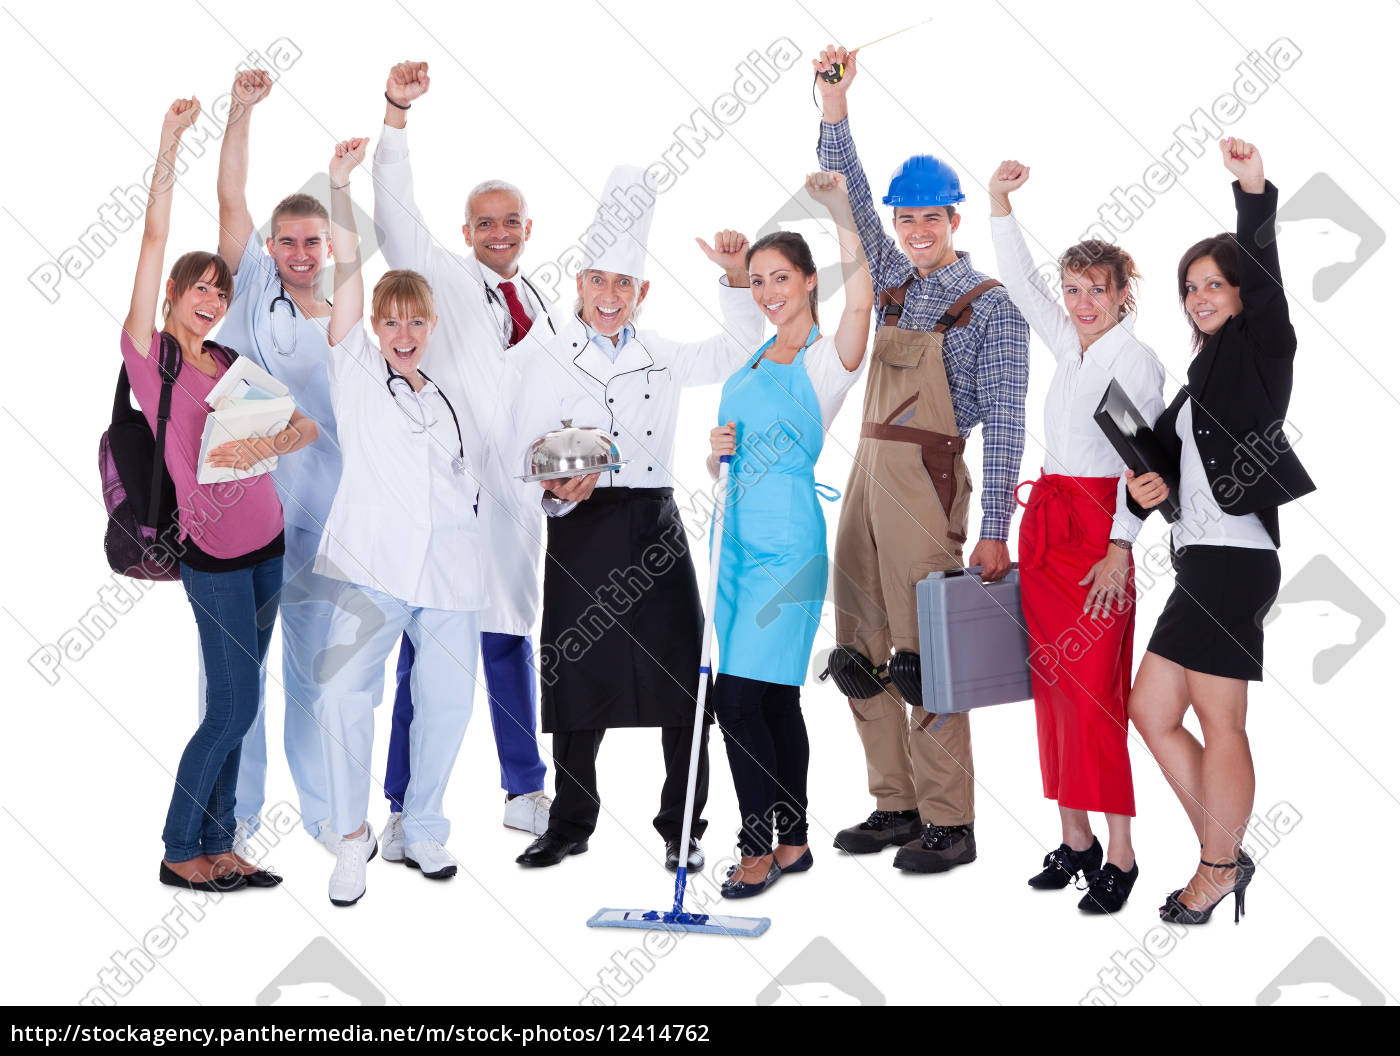 group, of, people, representing, diverse, professions - 12414762